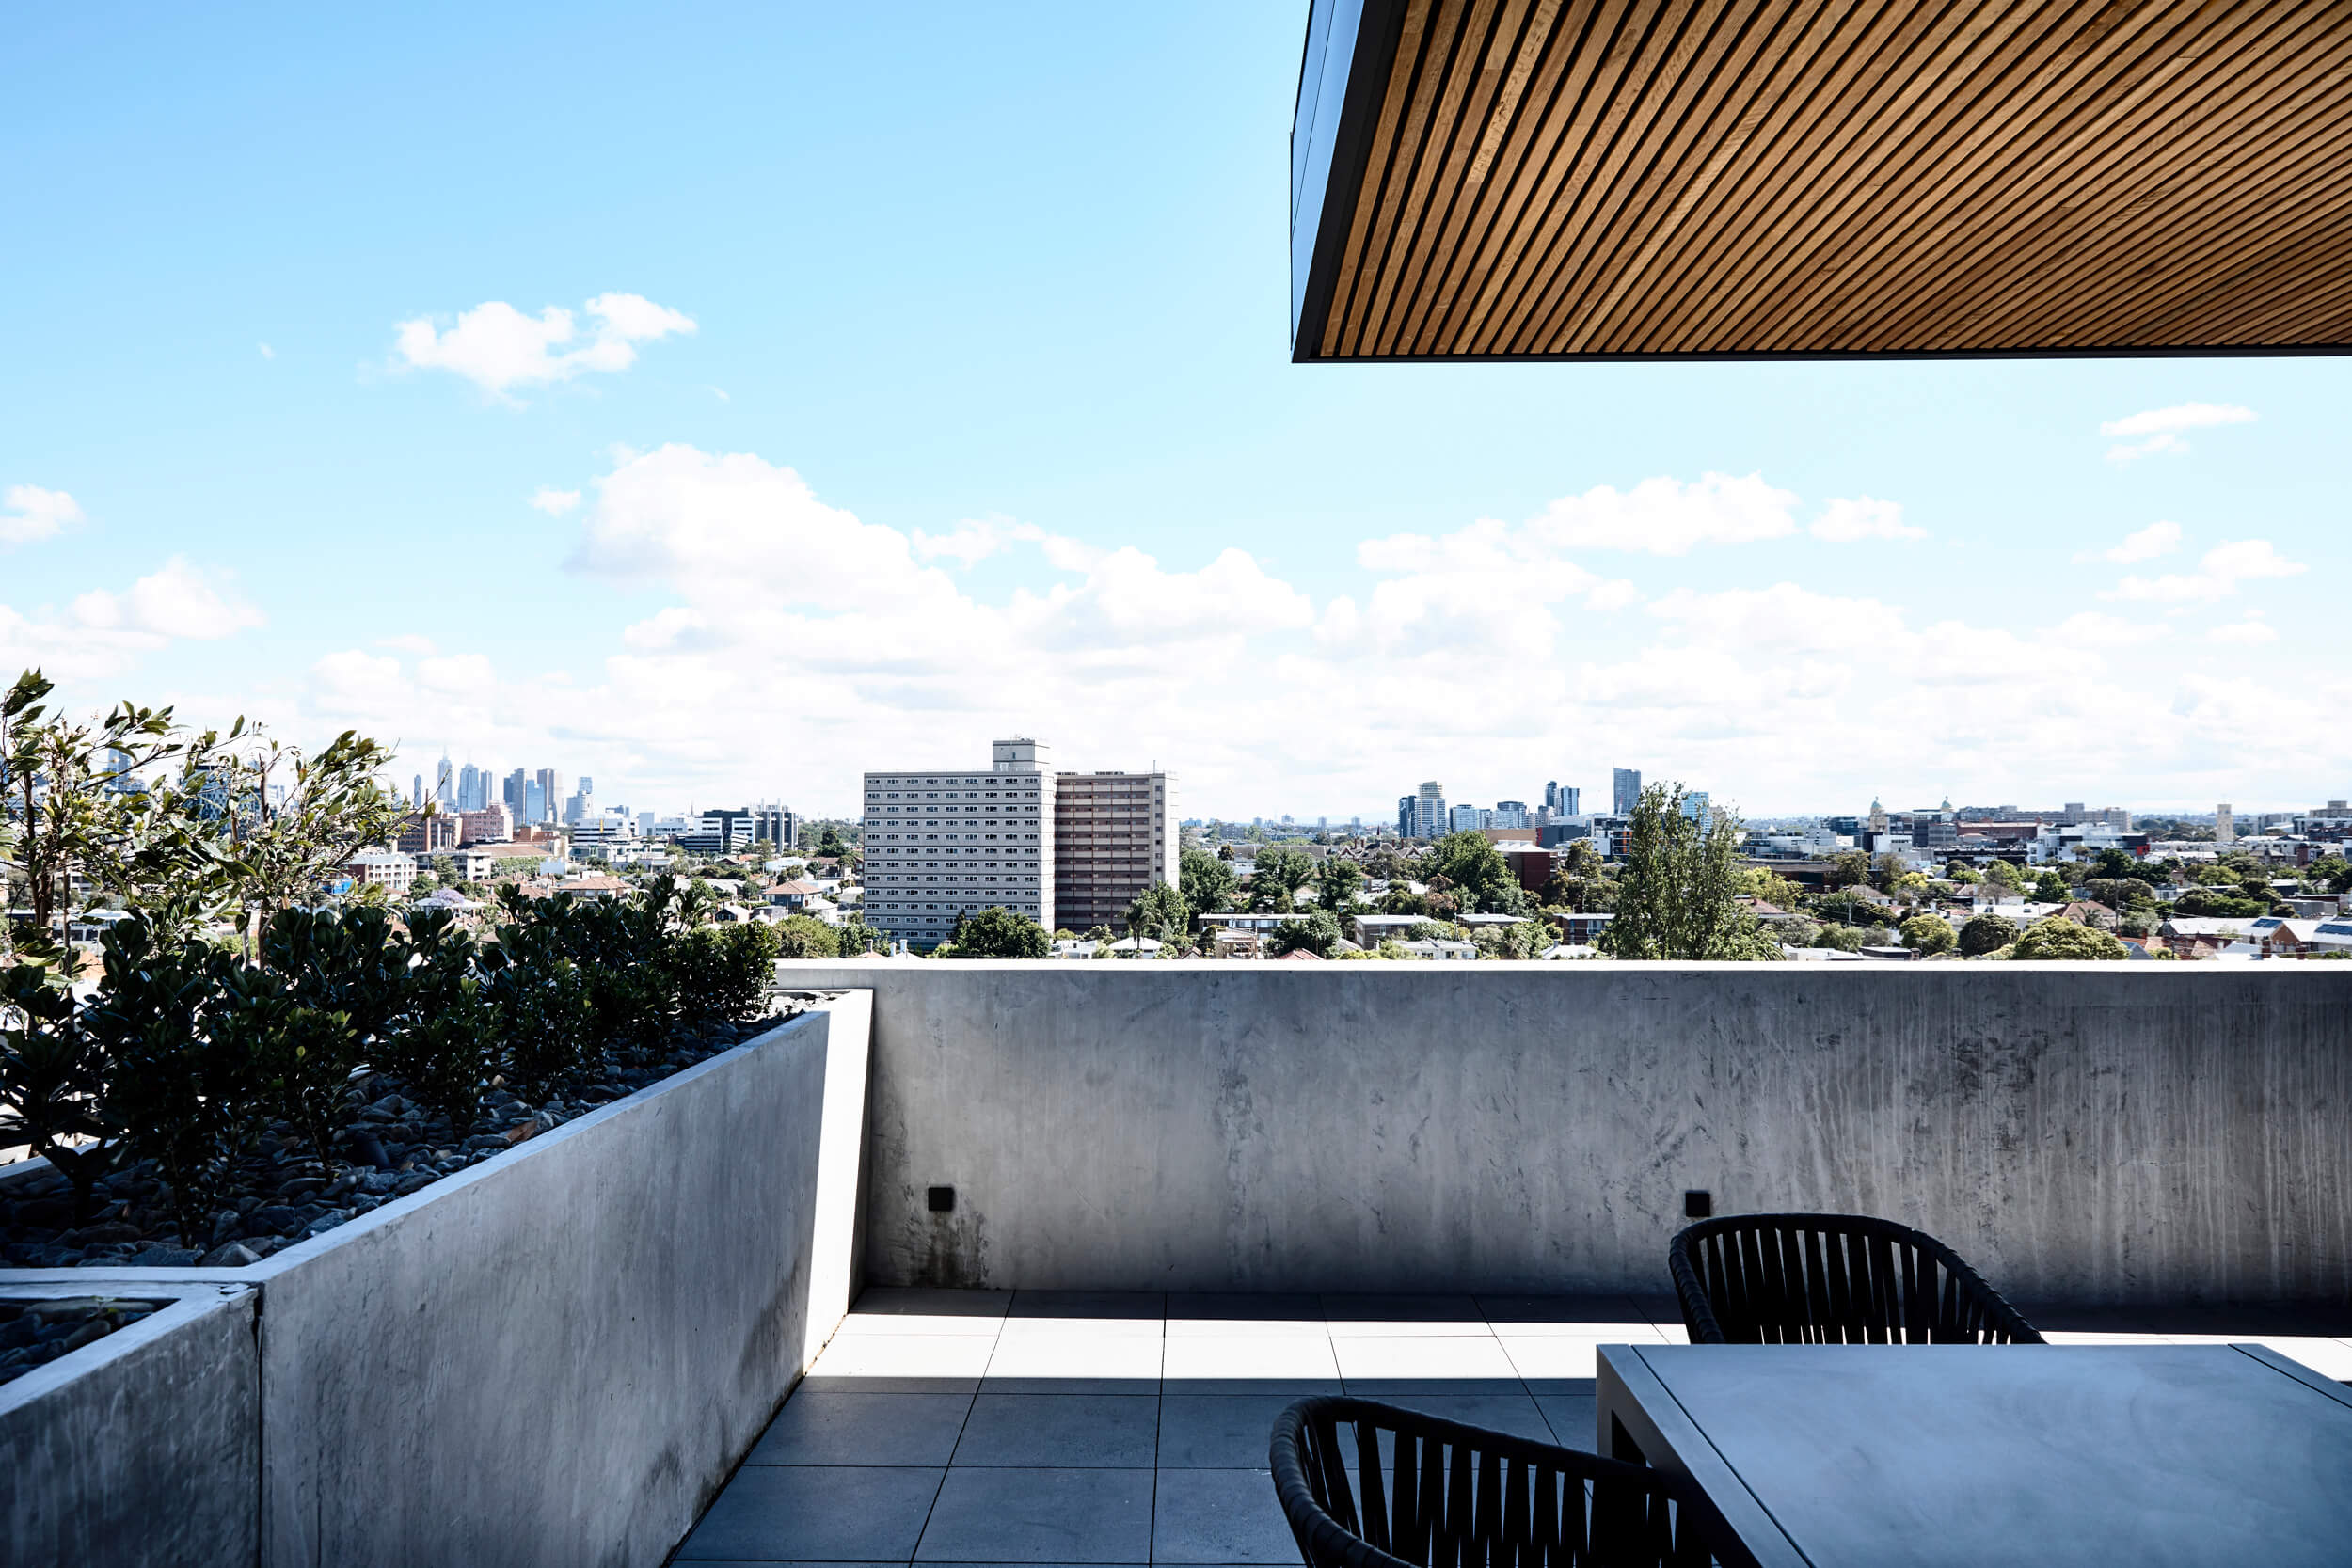 Holly Penthouse By Tom Robertson Architects Project Feature Melbourne, Australia Local Australian Design & Architectureholly R V Derek090